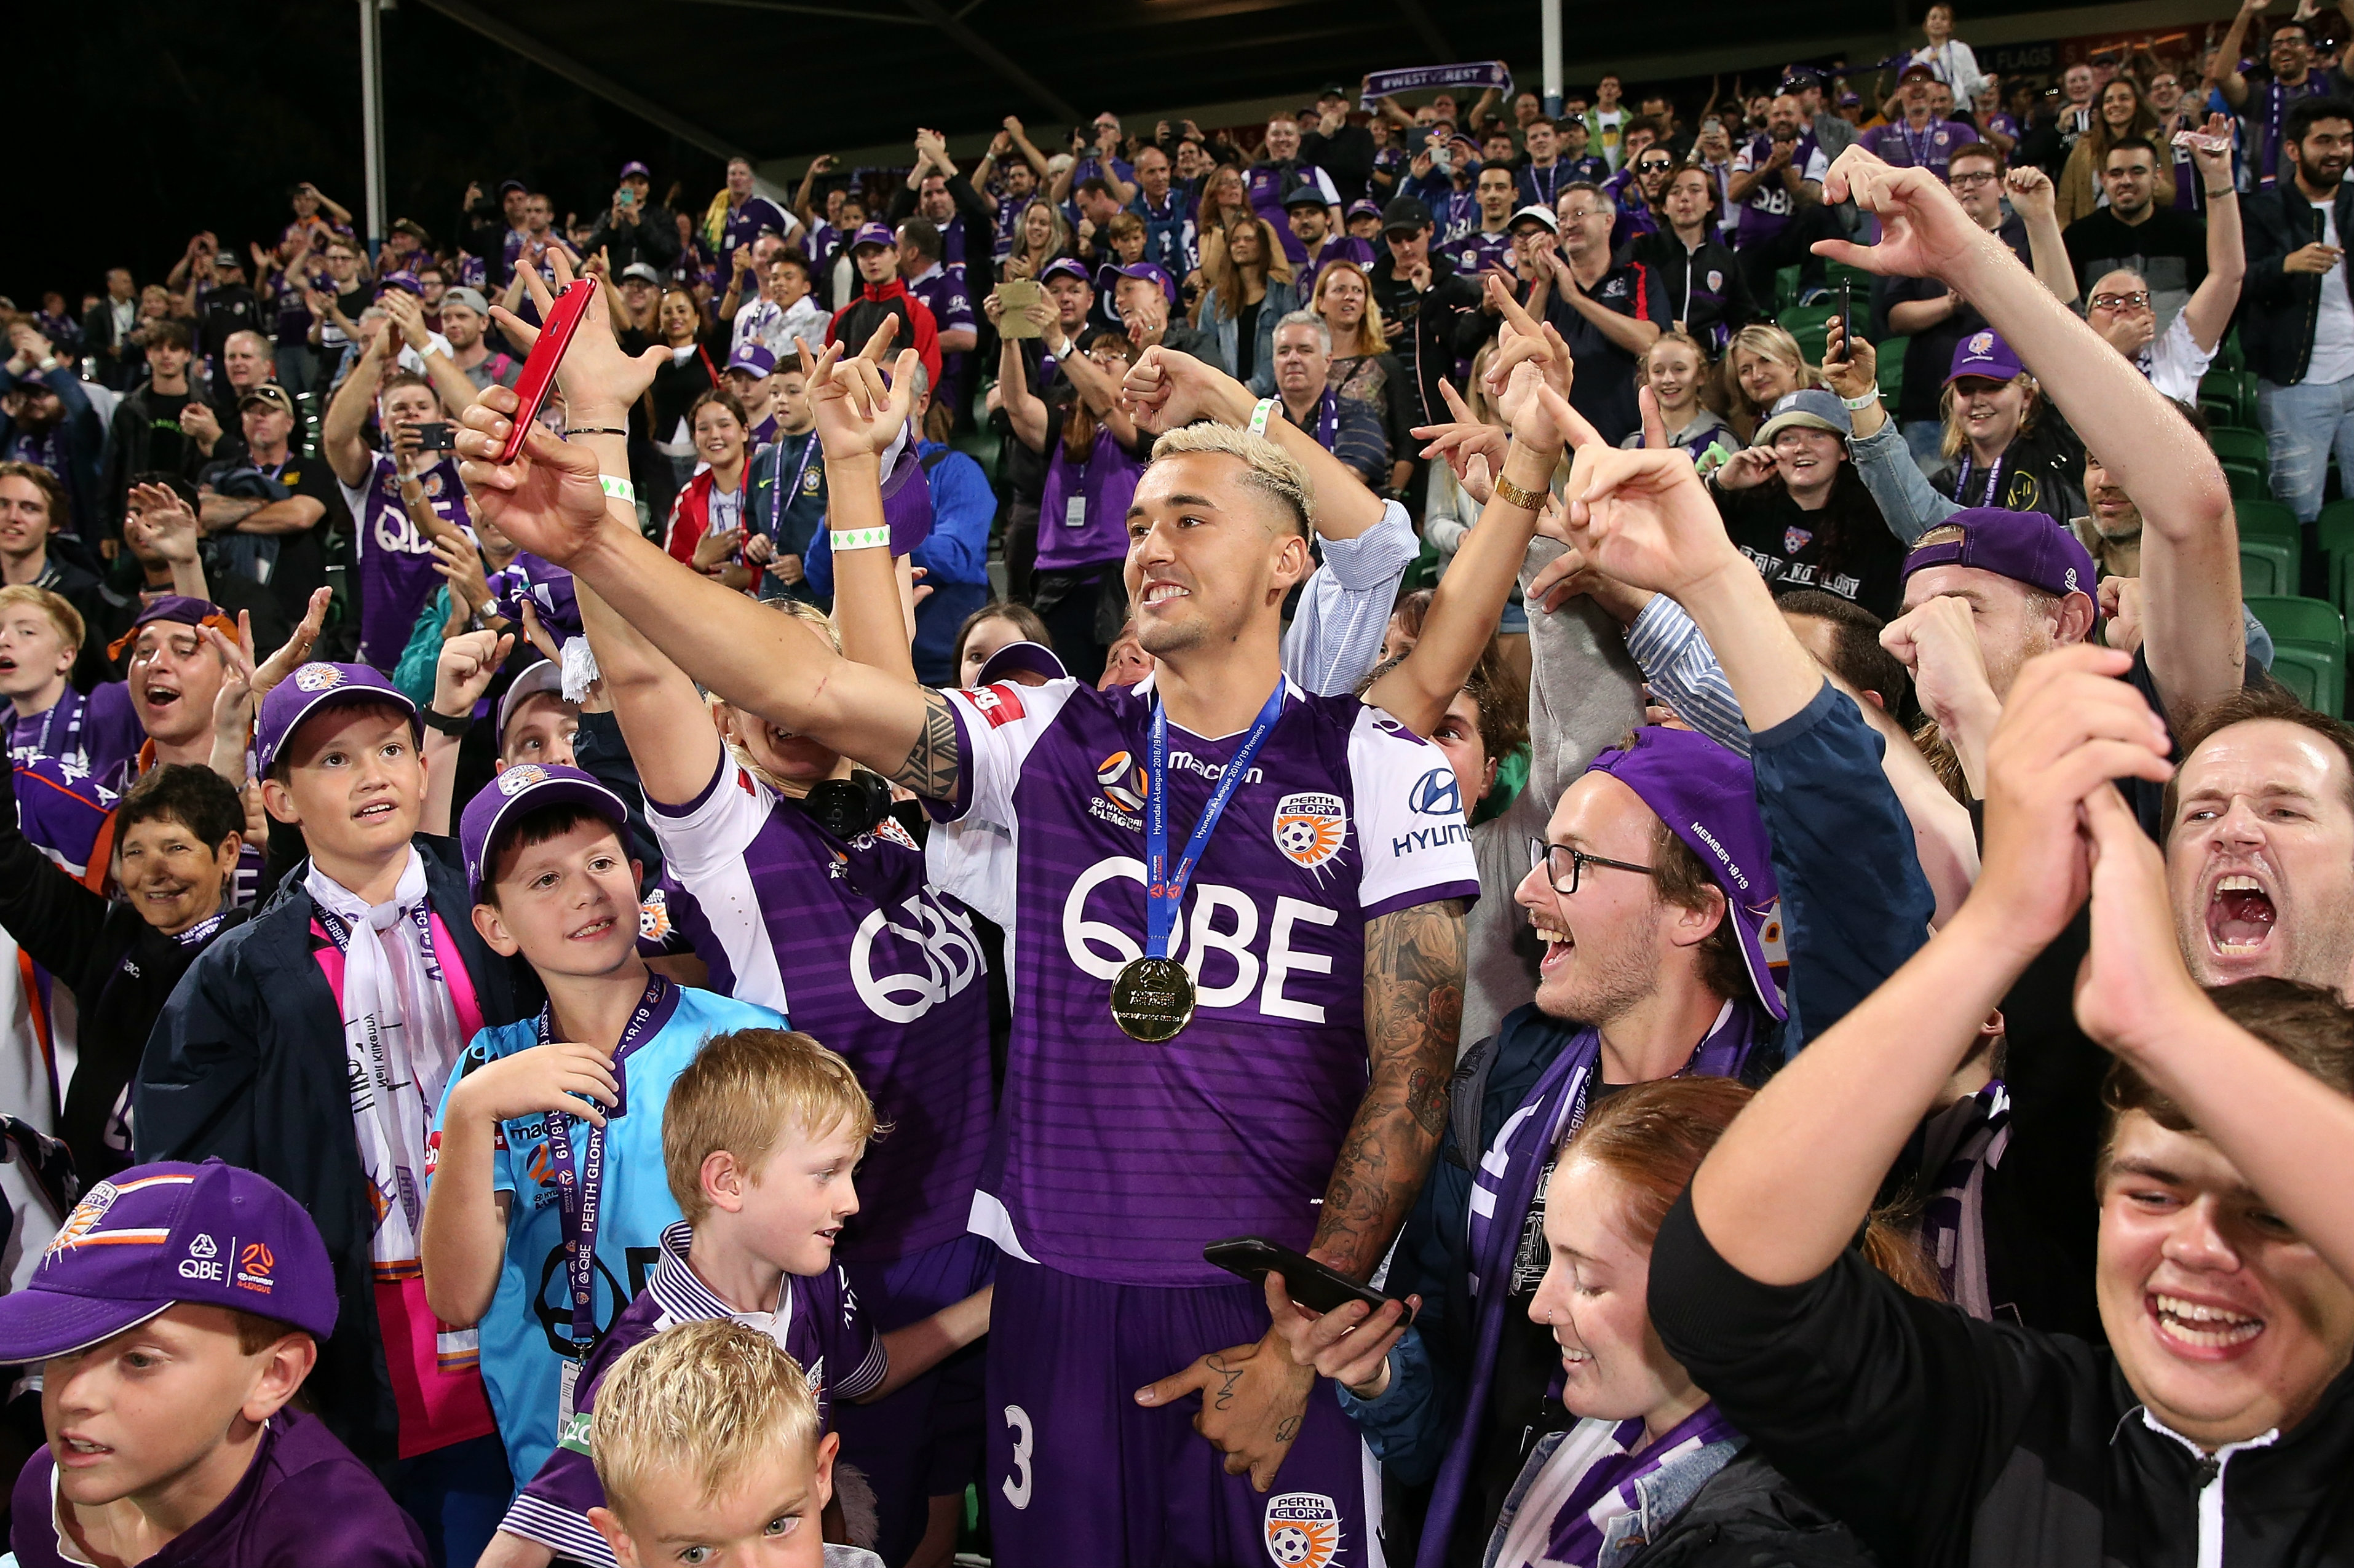 Perth Glory are going to have massive home support behind them against Sydney FC